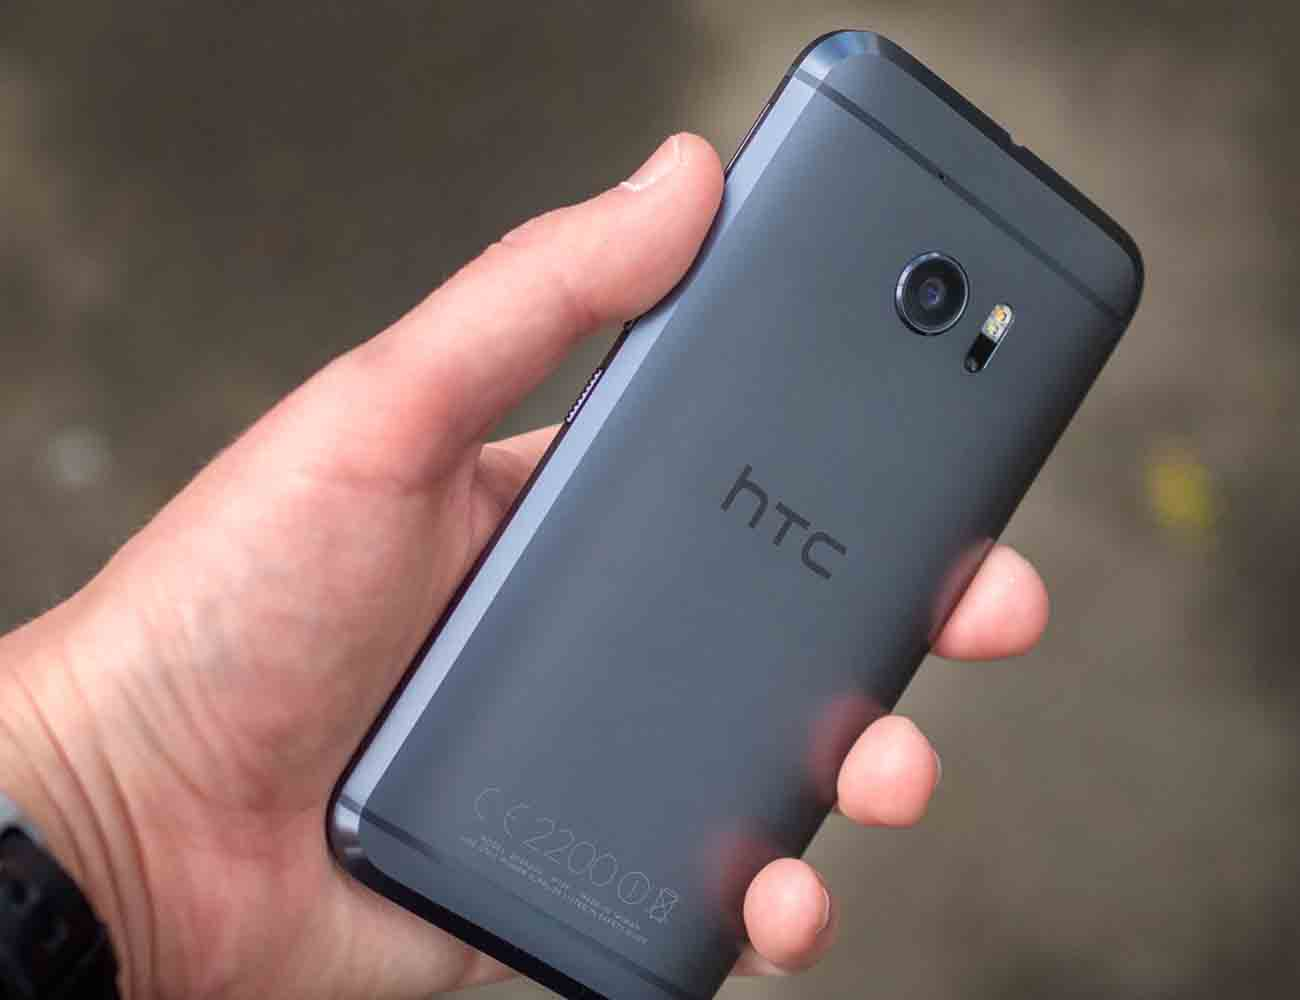 HTC 10 – With 5.2-inch Display and 3000mAh Battery